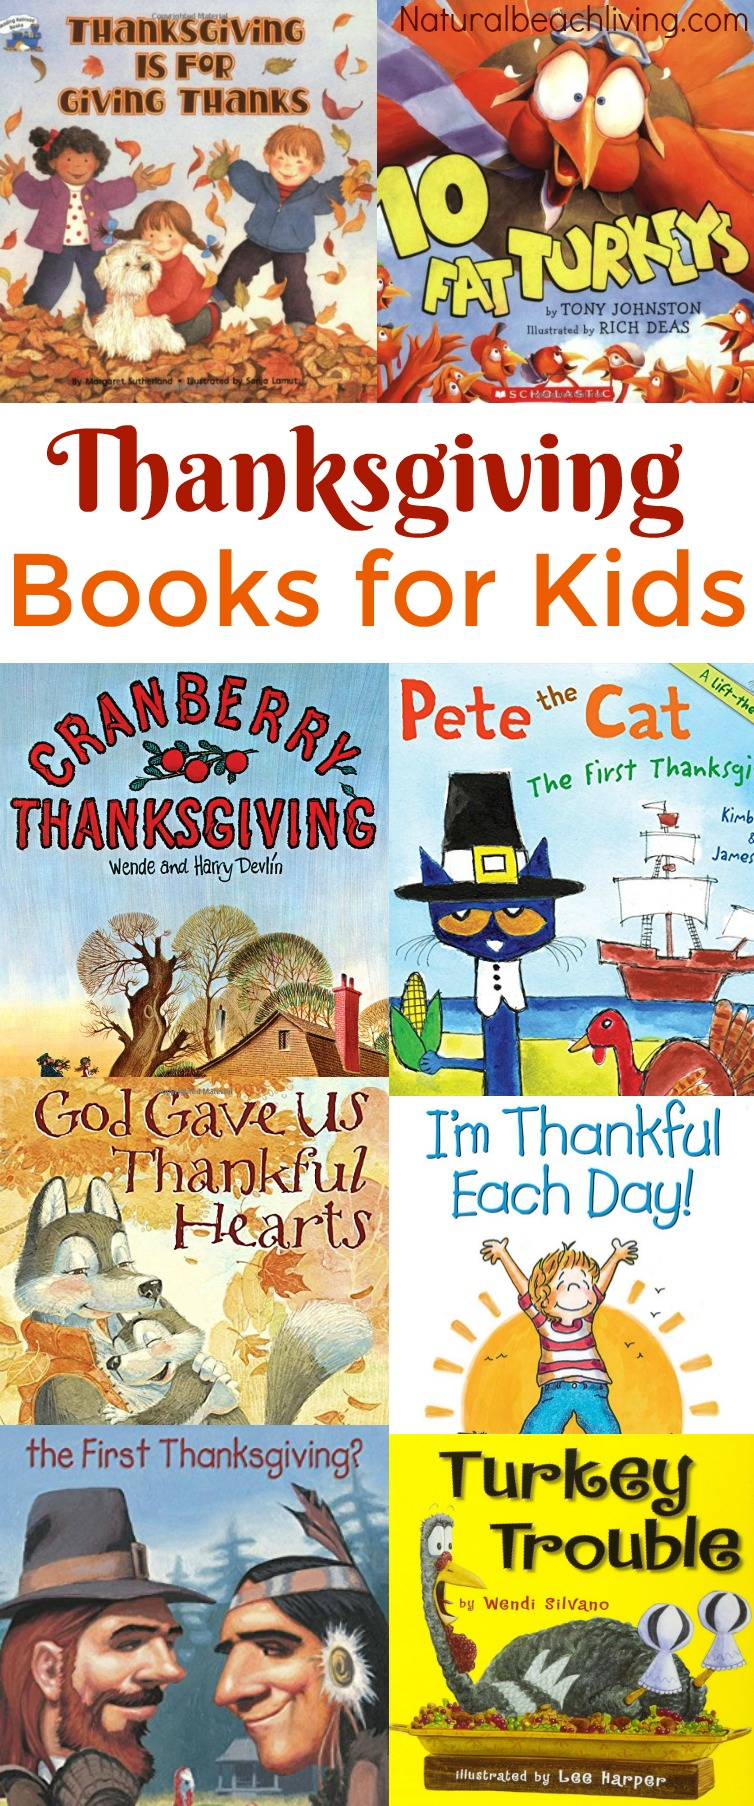 These Free Thanksgiving Printables are perfect for kids of all ages. You'll find a variety of fun Thanksgiving printables topracticegratitude, Thanksgiving games, decorate for Thanksgiving, and several hands-on learning ideas with a Thanksgiving theme. Thanksgiving Activity Pages